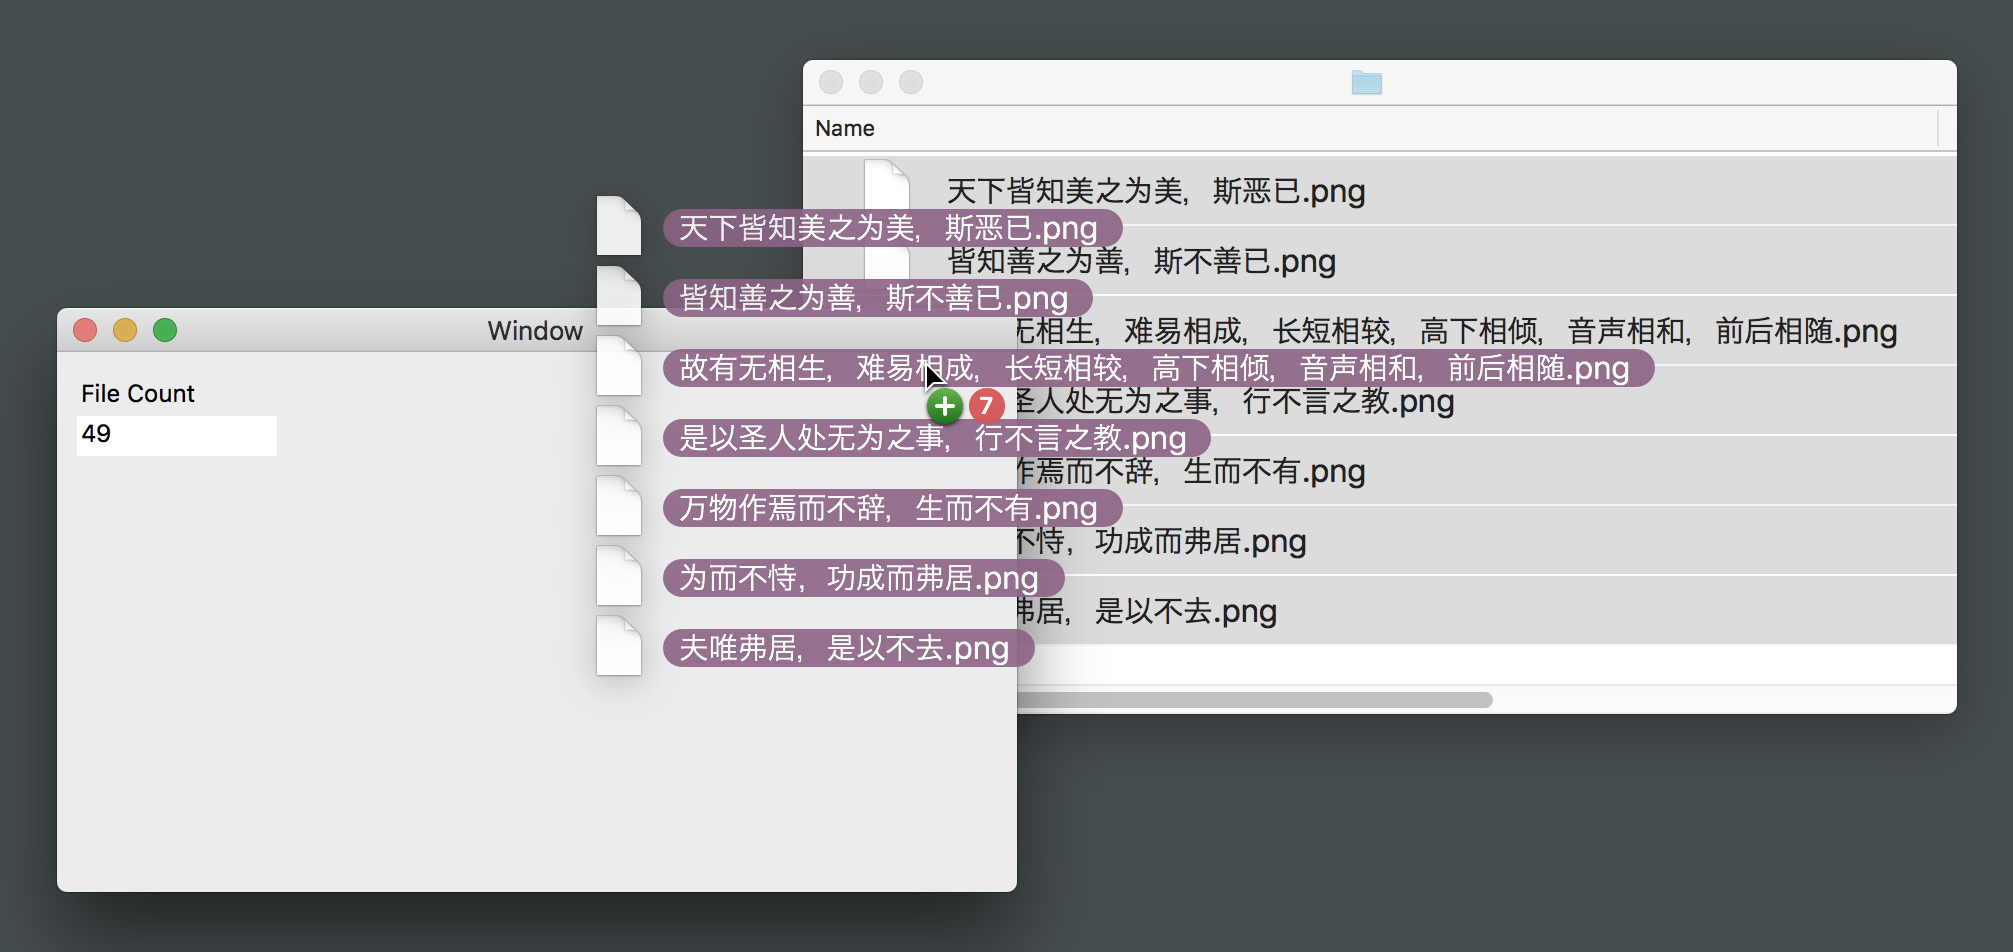 Figure 1: Dragging-and-Dropping multiple files into a window from the Finder.